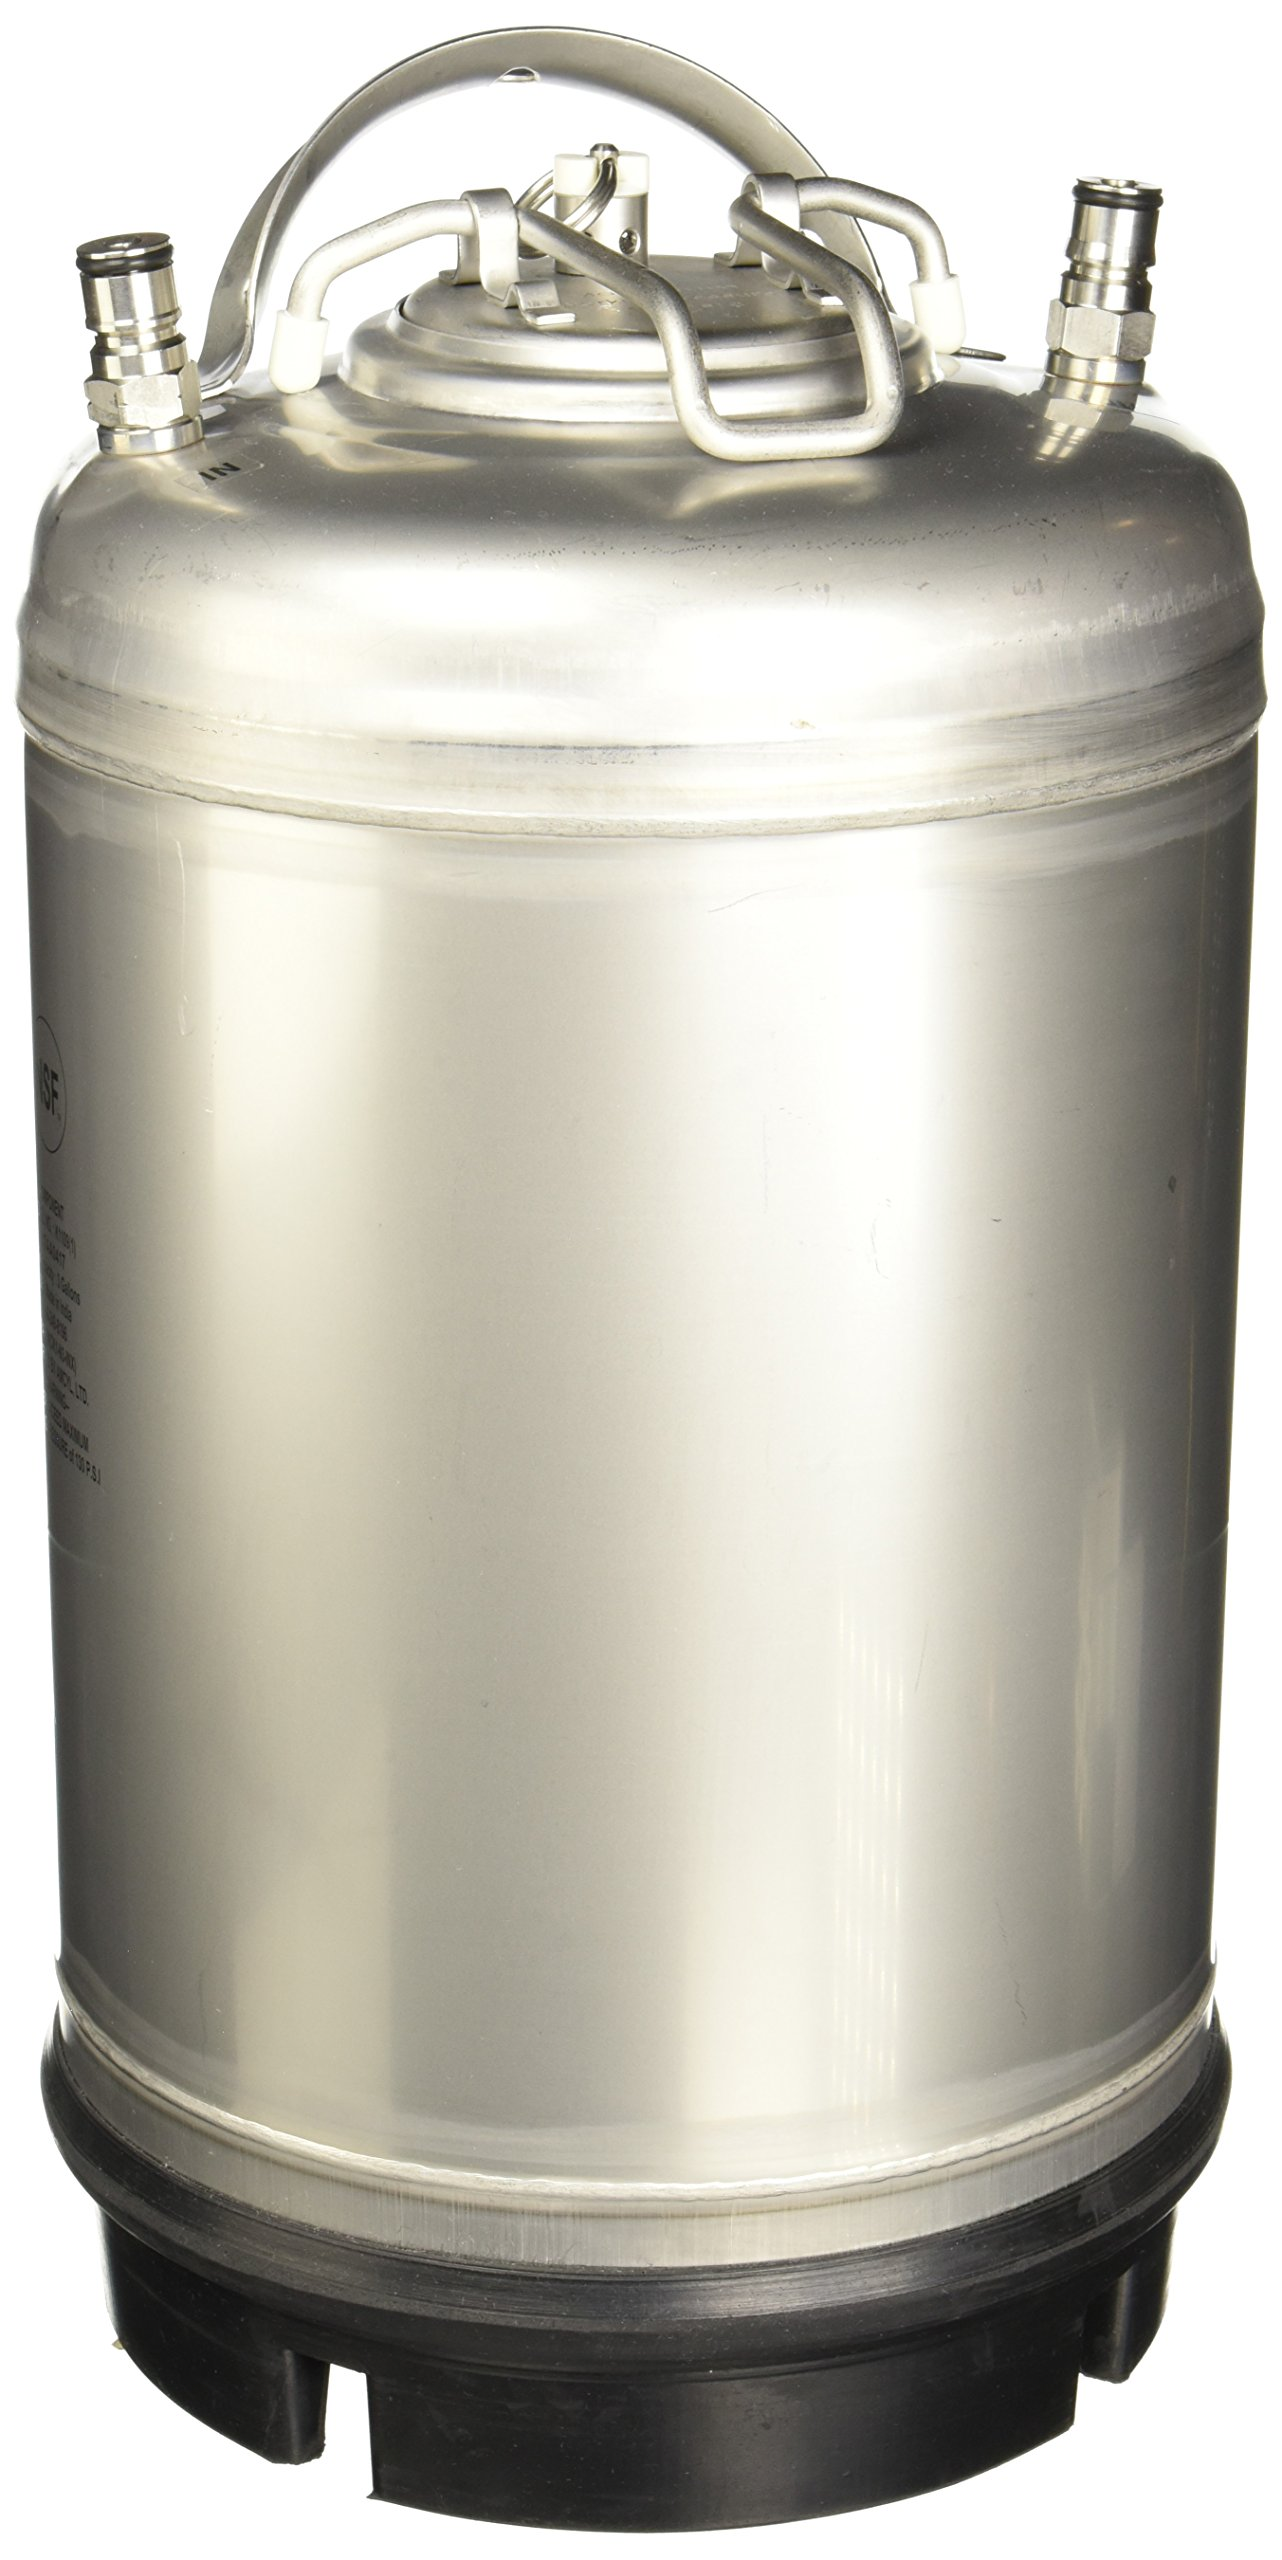 Varies - AMCYL CKN3-SH 3 gal Keg New Ball Lock Beer, Soda or Tea